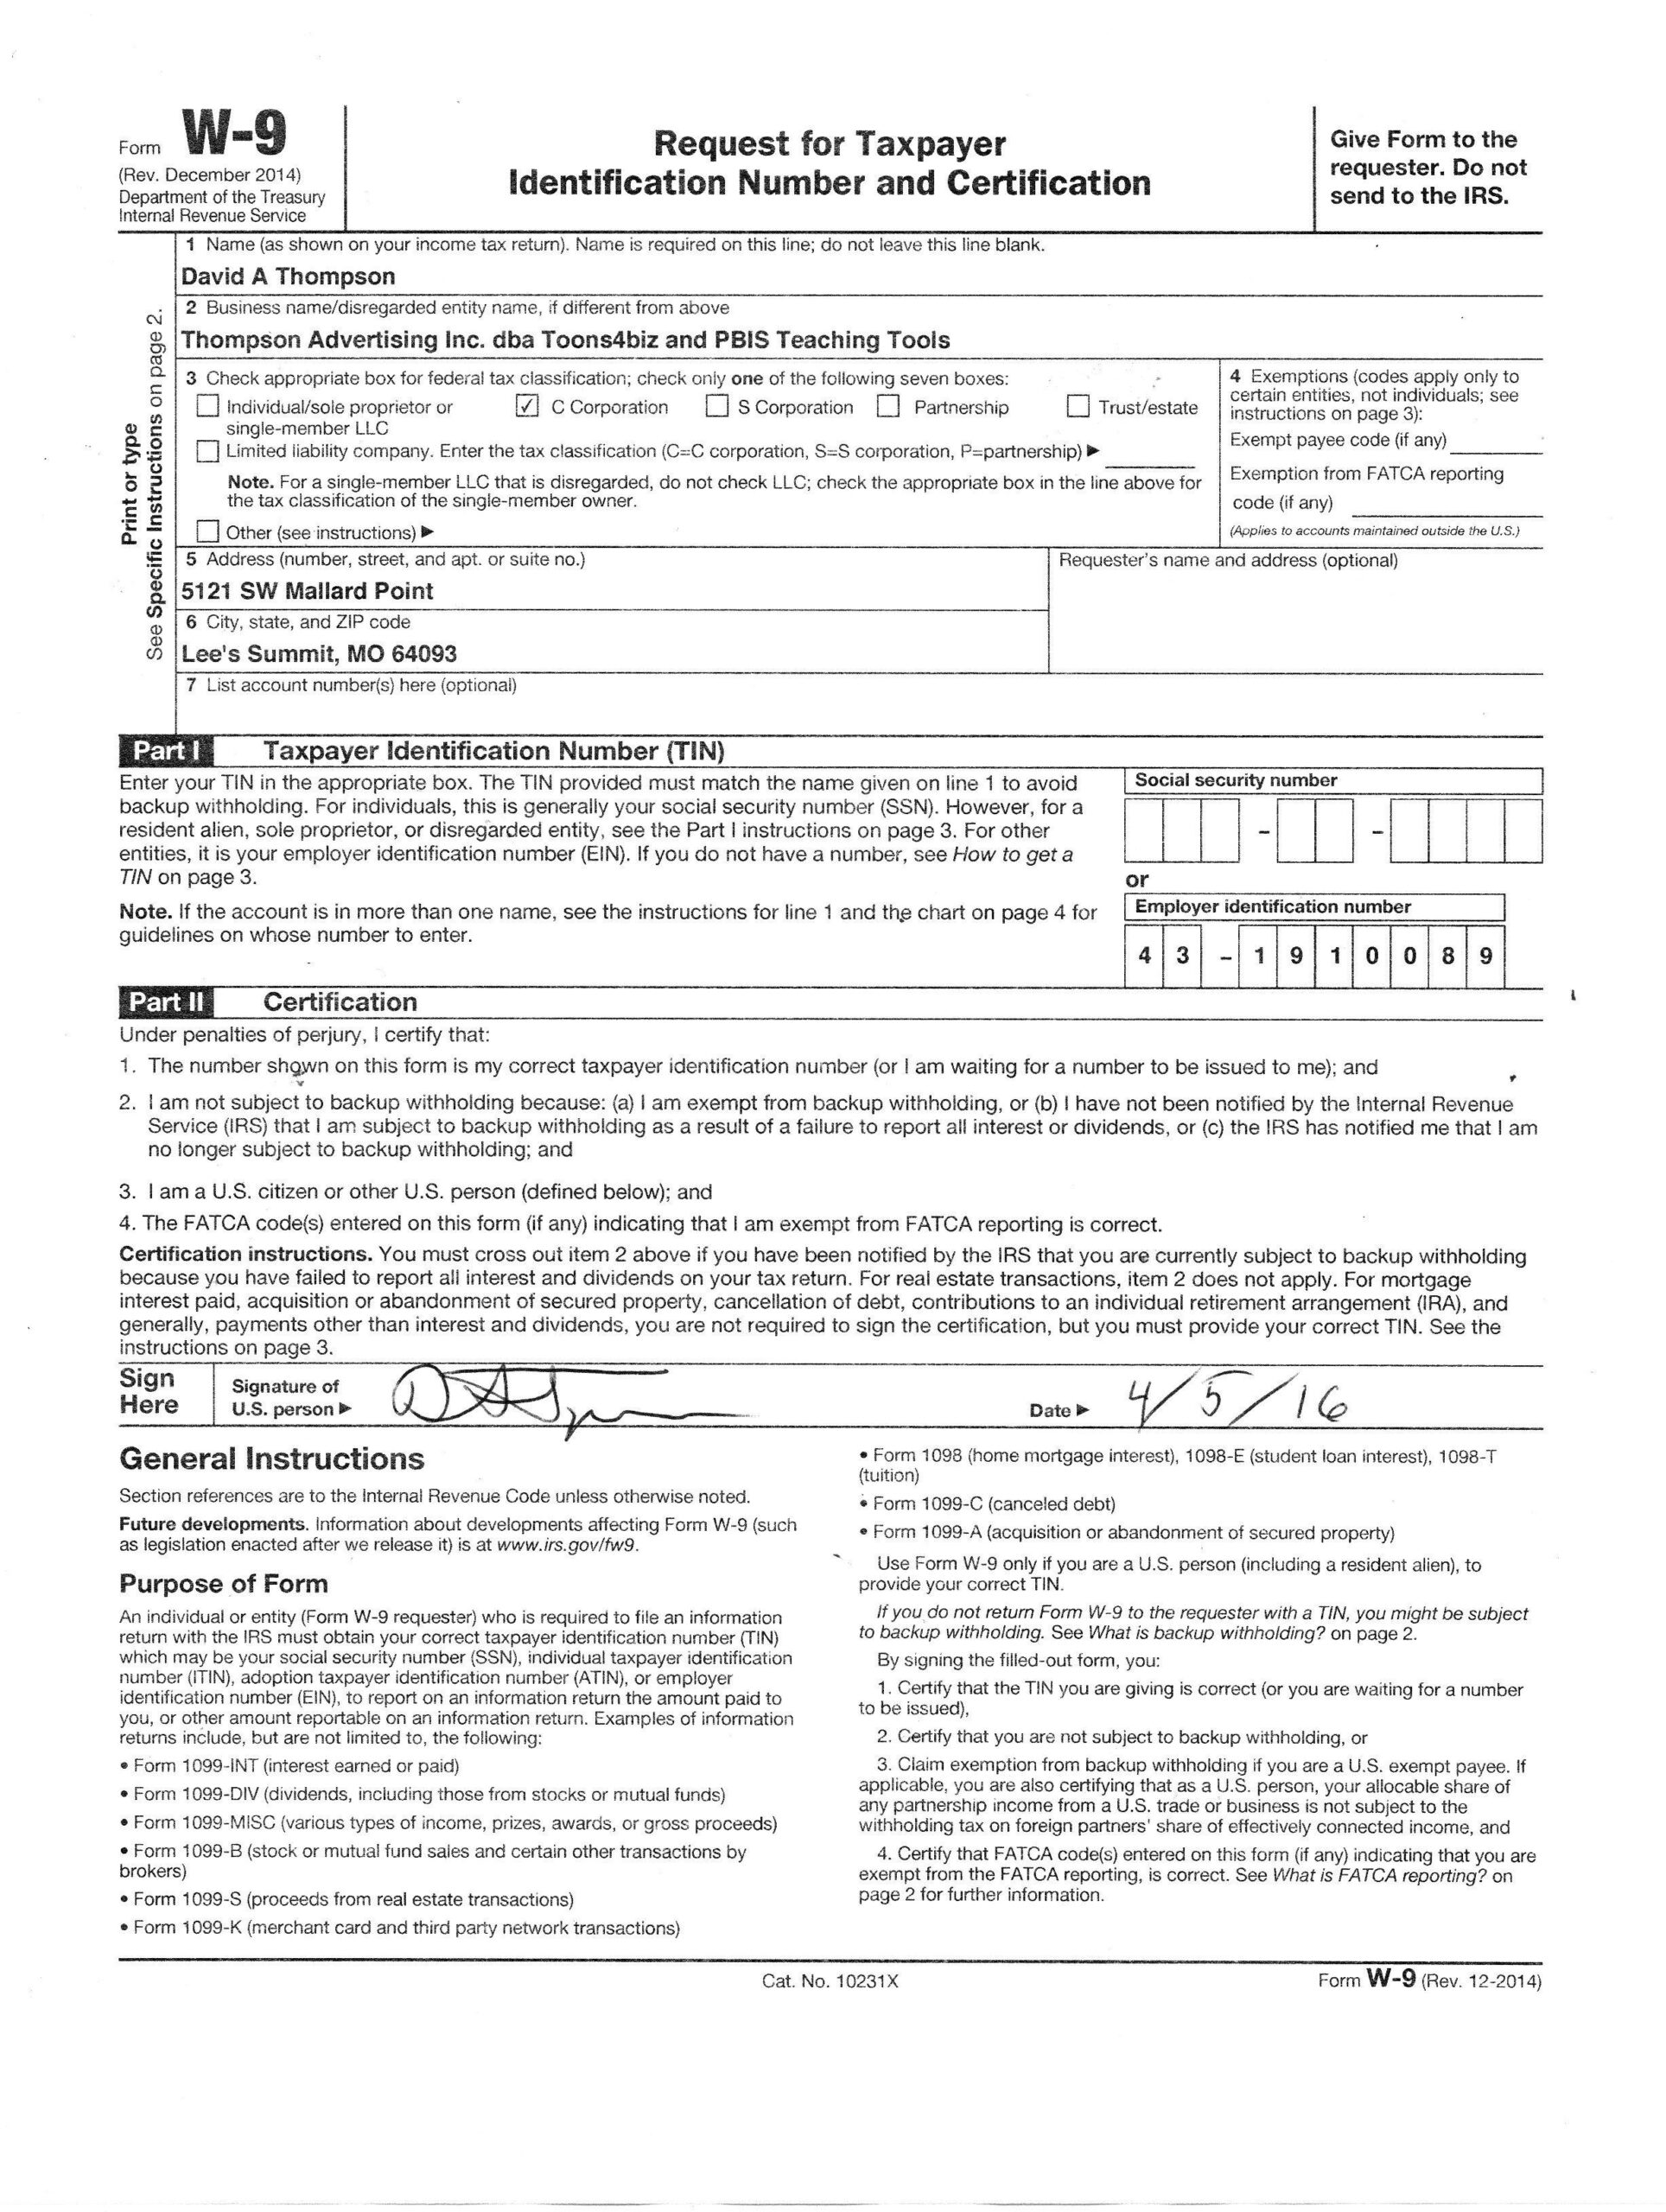 Downloadable W 9 Form W9 Form Mascot Junction In 2020 pertaining to Irs W 9 Form Download